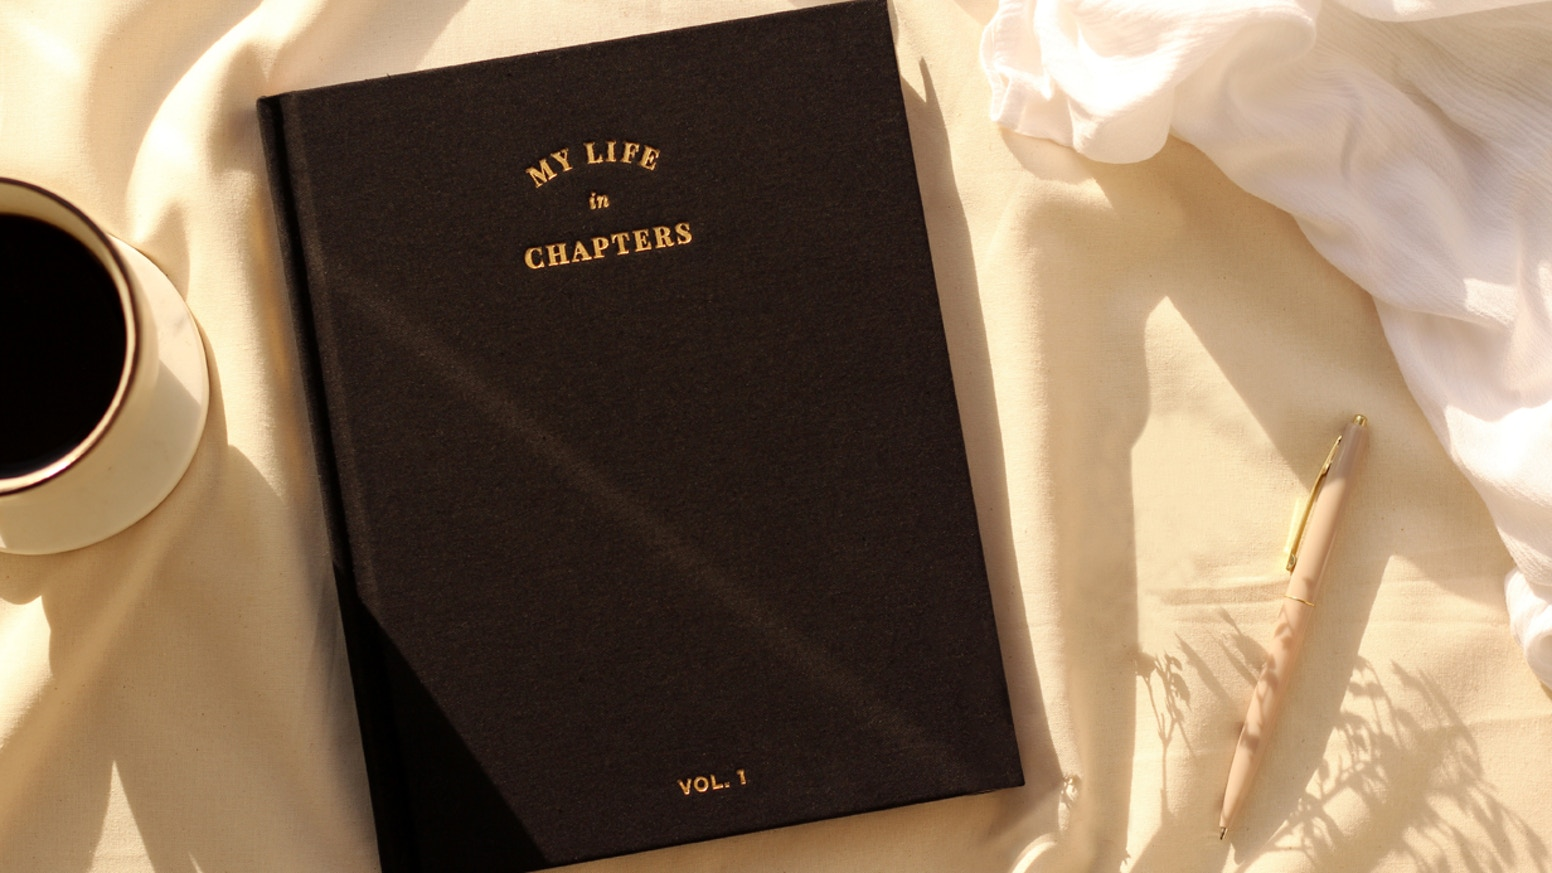 Ten years, one guided journal. The easy way to make your memories everlasting.